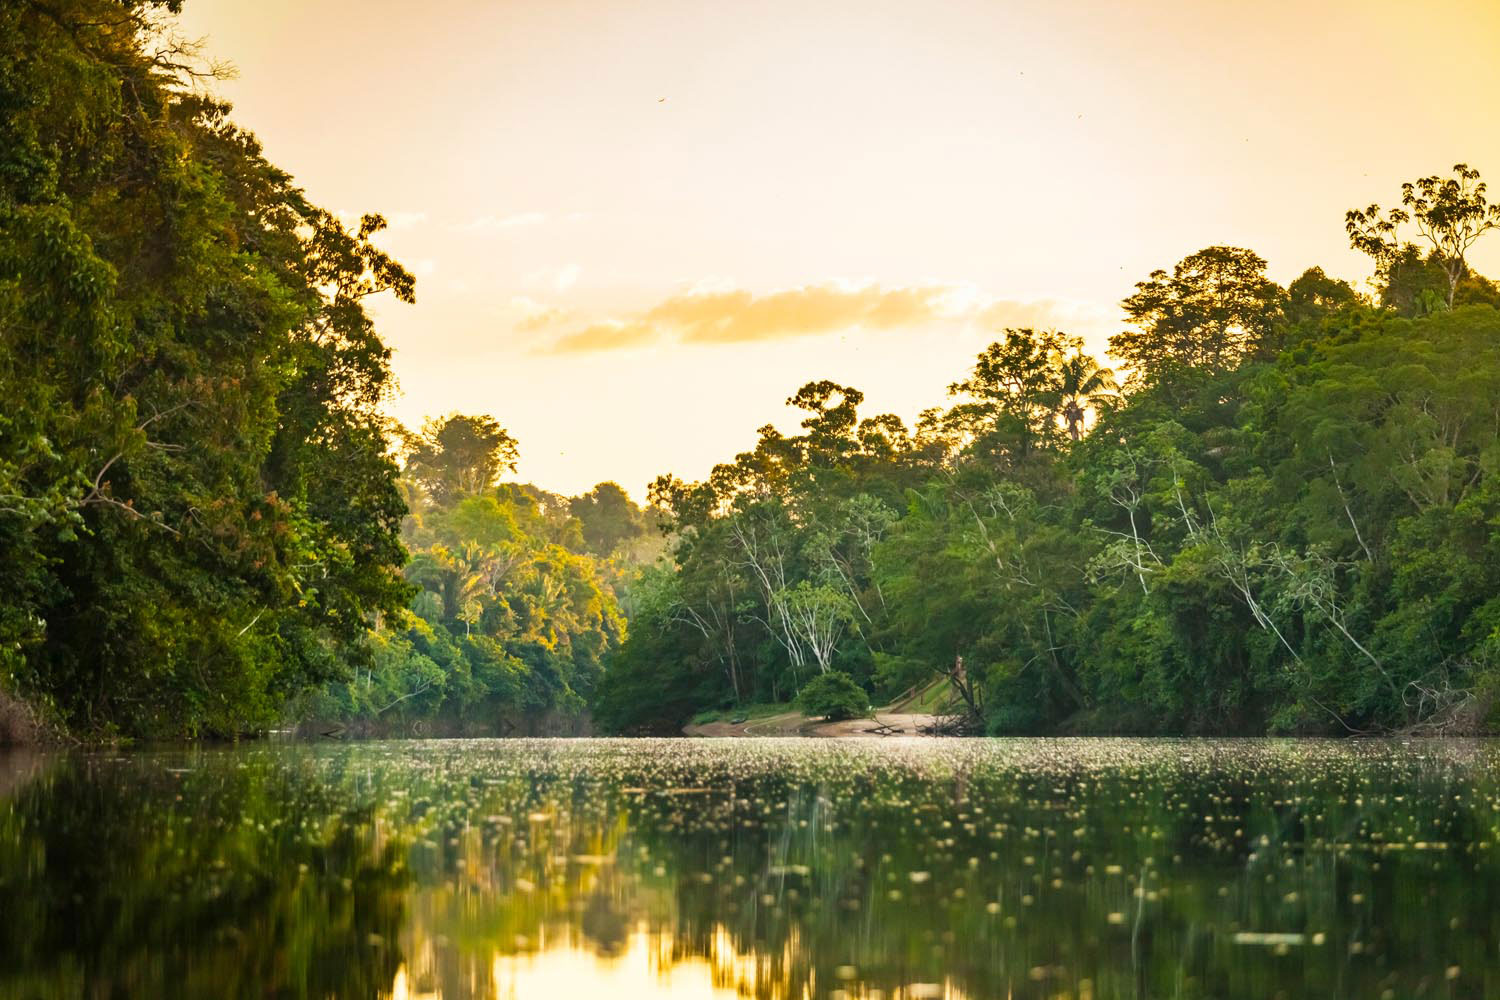 Suriname's interior is an unspoiled landscape of mountains, savannahs, forests, and rivers. Marcel Bakker/Shutterstock.com